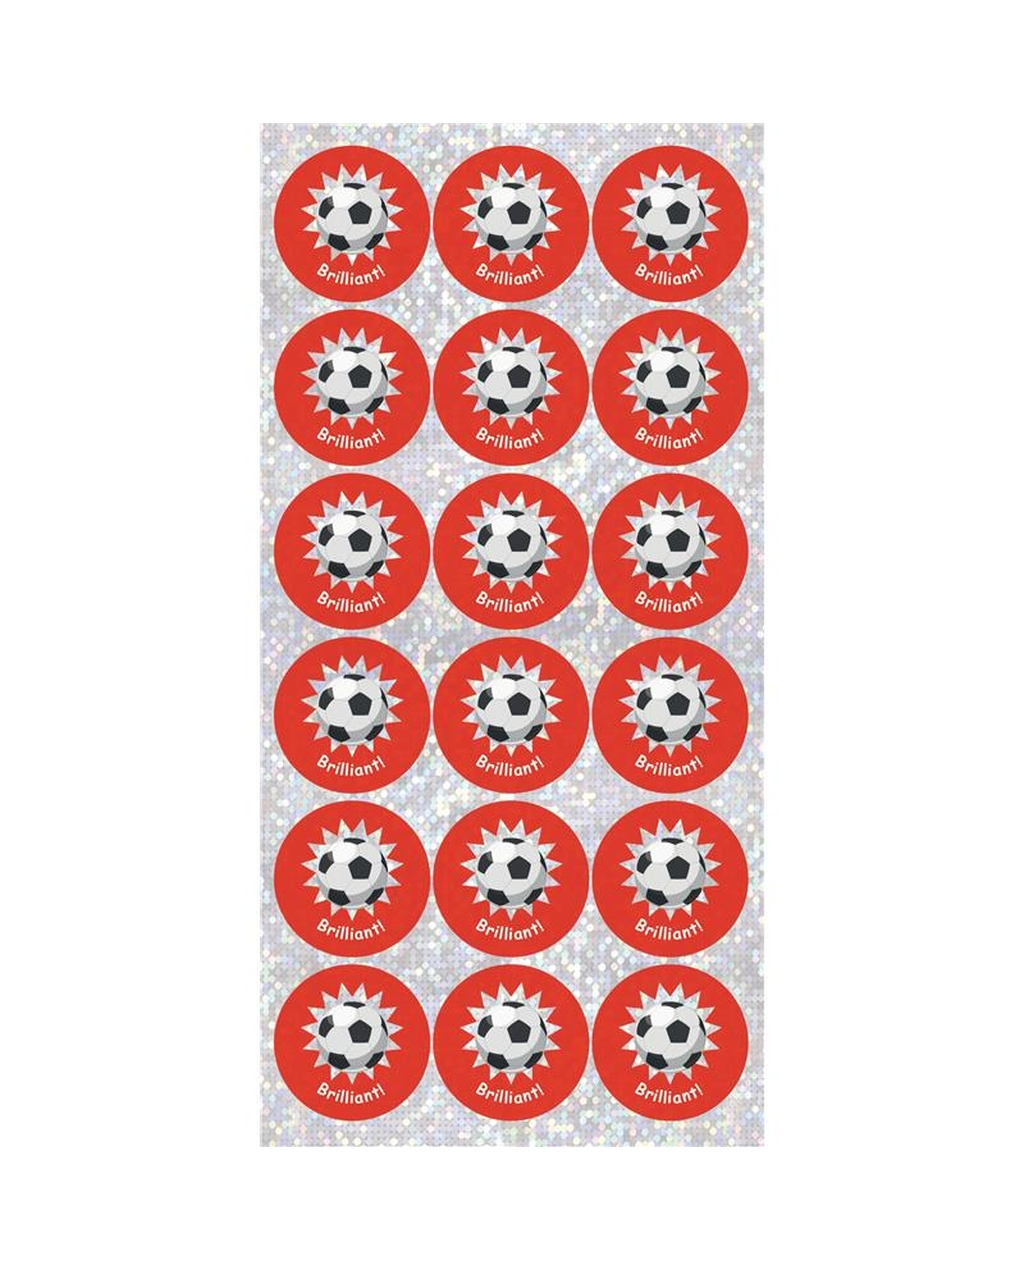 Football Sparkly Stickers